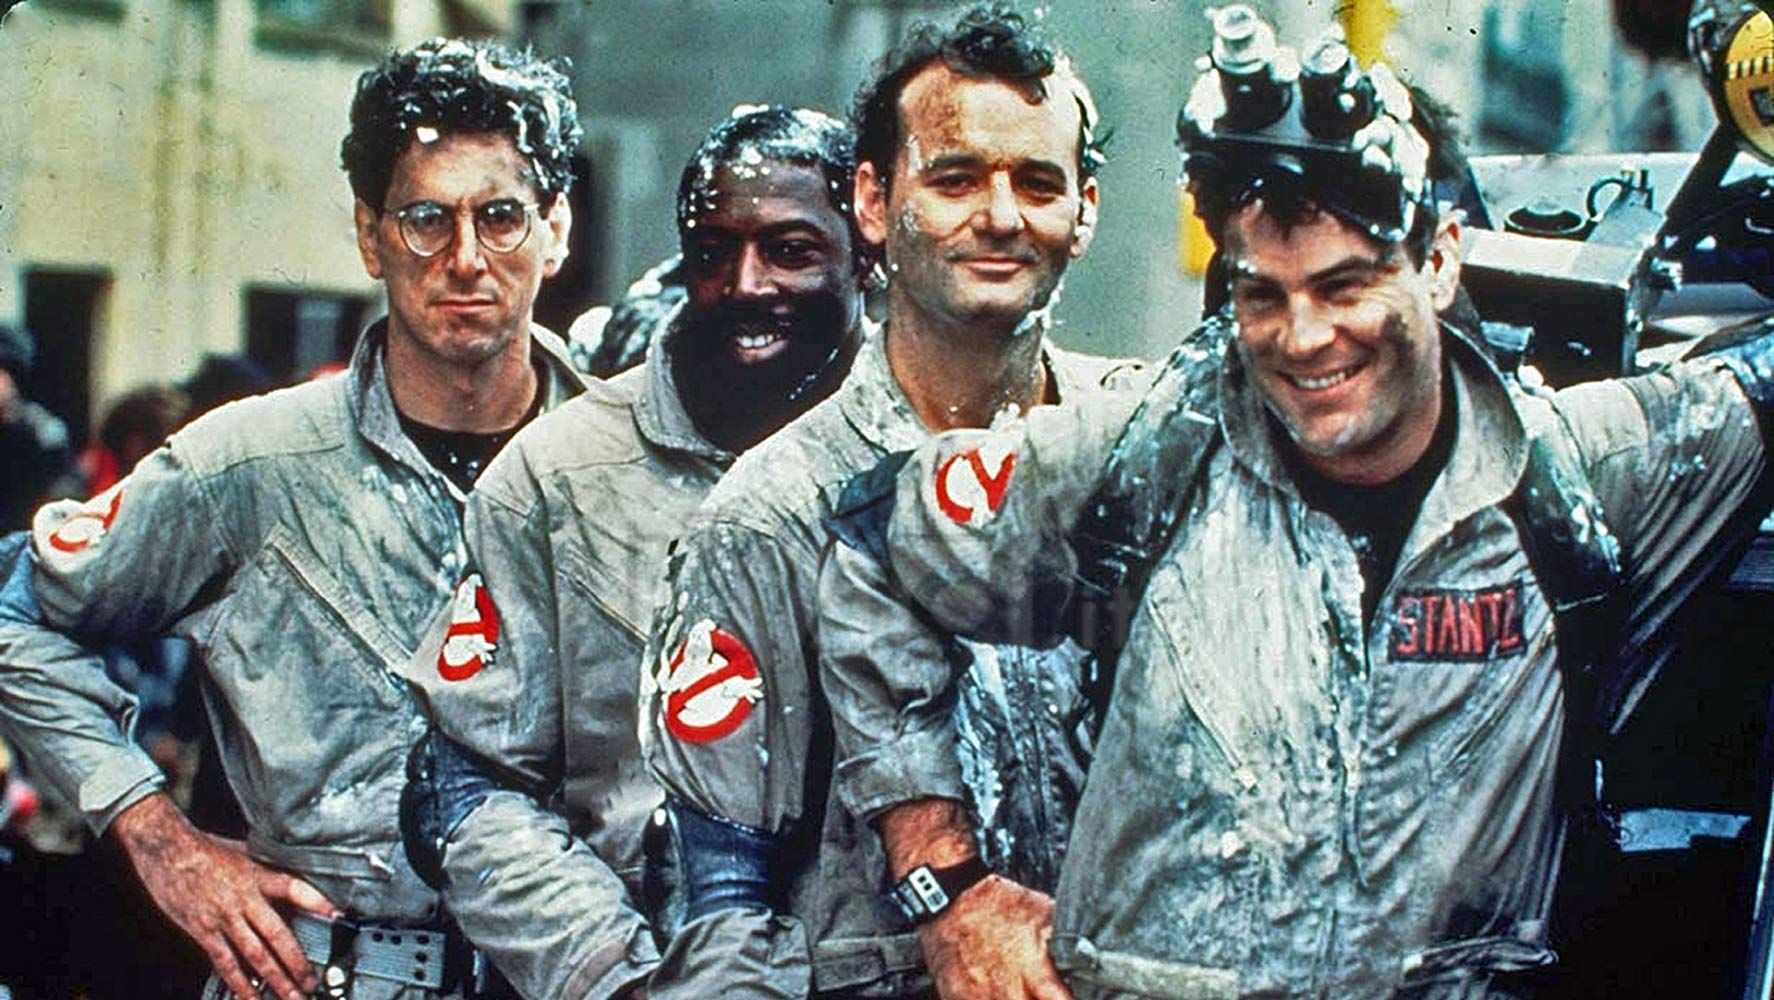 Another Original 'Ghostbusters' Star Confirms They're Returning for 'Ghostbusters 2020'